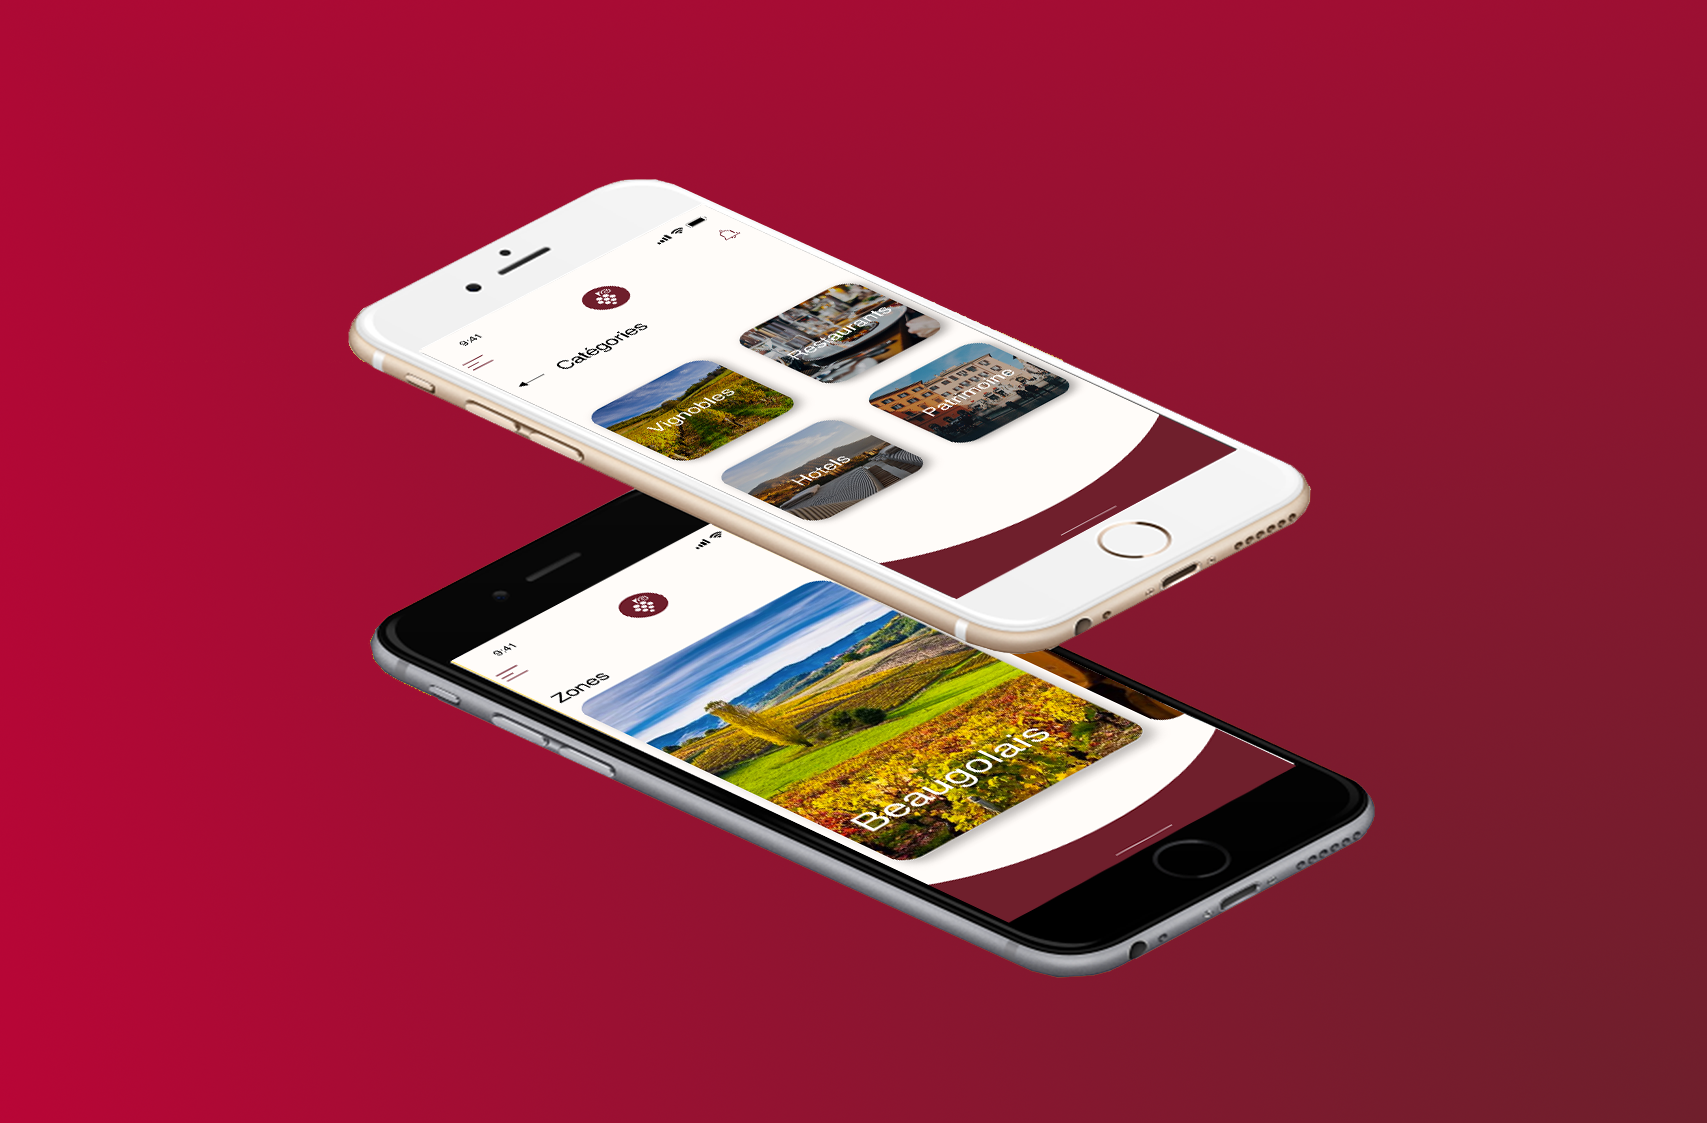 design branding création interface ux/ui design likeweb agency routedesvins application mobile ios android java swift reactnative